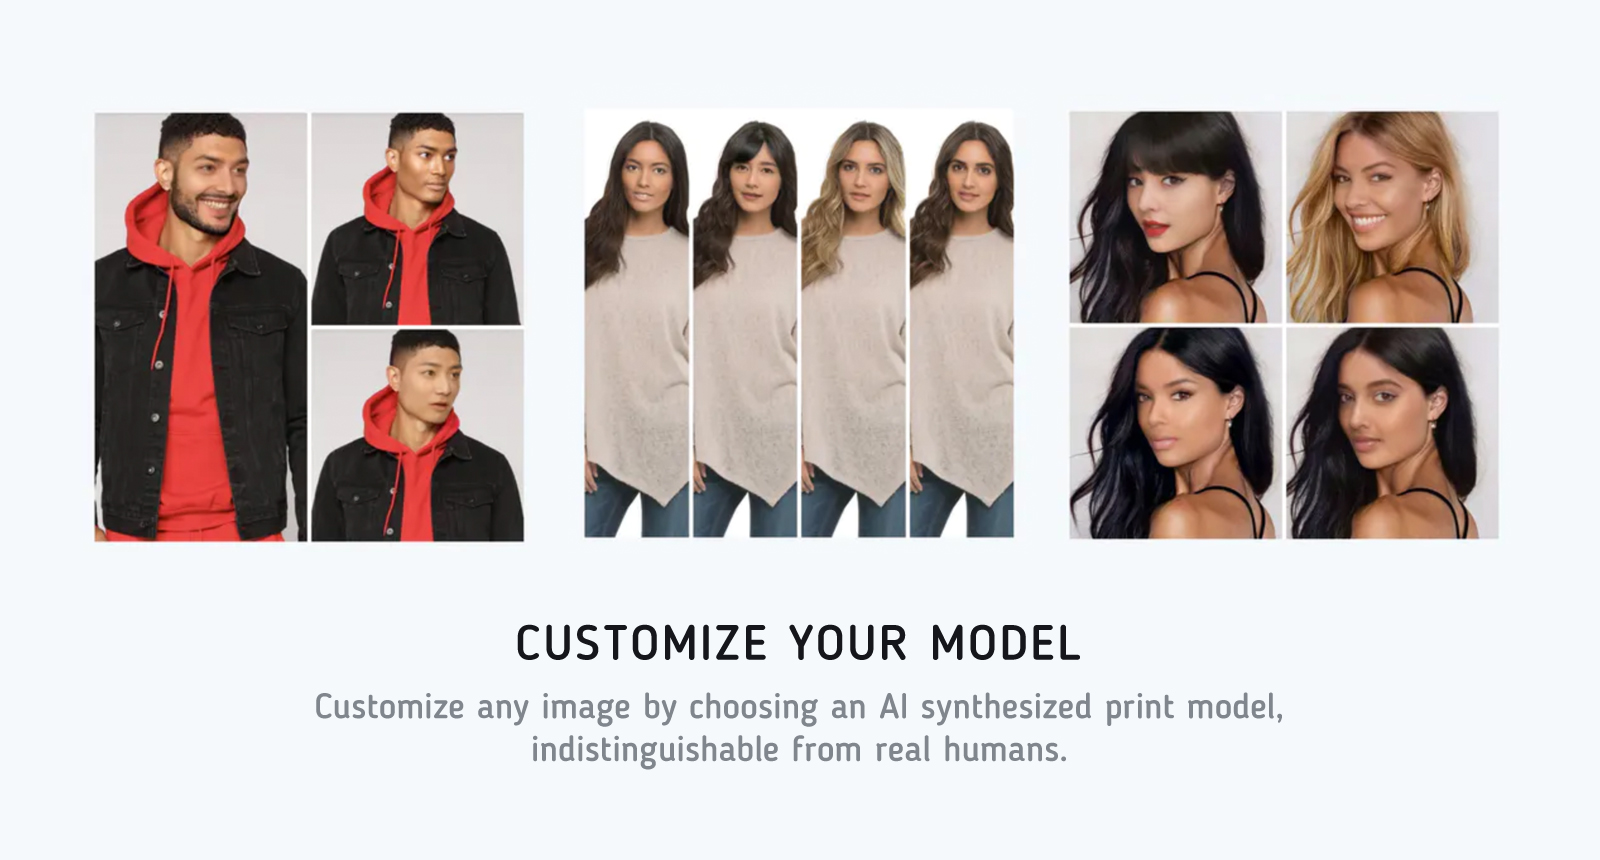 Customize your model